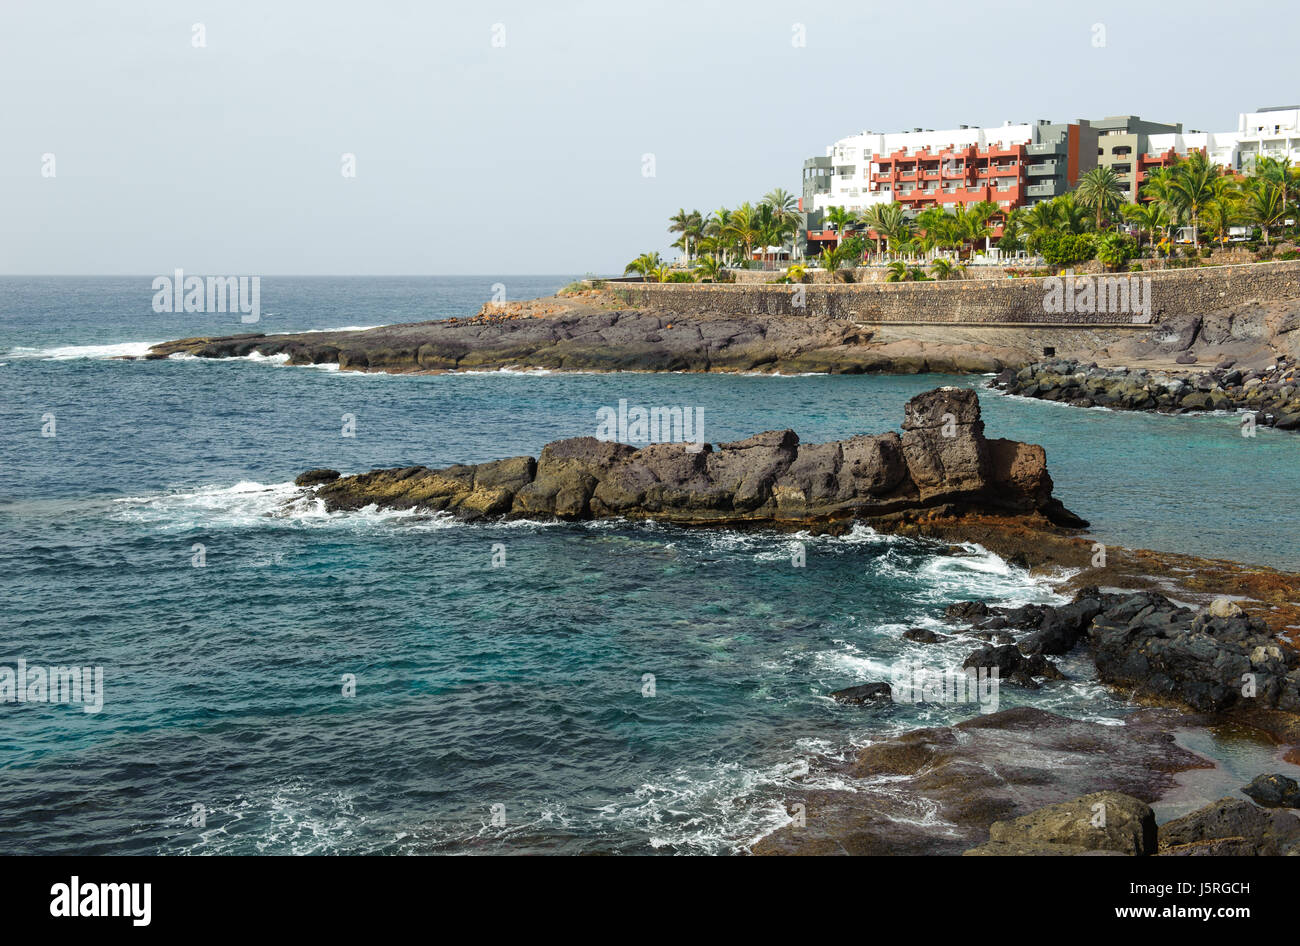 Playa El Pinque Tenerife -25 December, 2016. Promenad around Playa El Pinque beach in  Tenerife, Canaries Island, - Stock Image